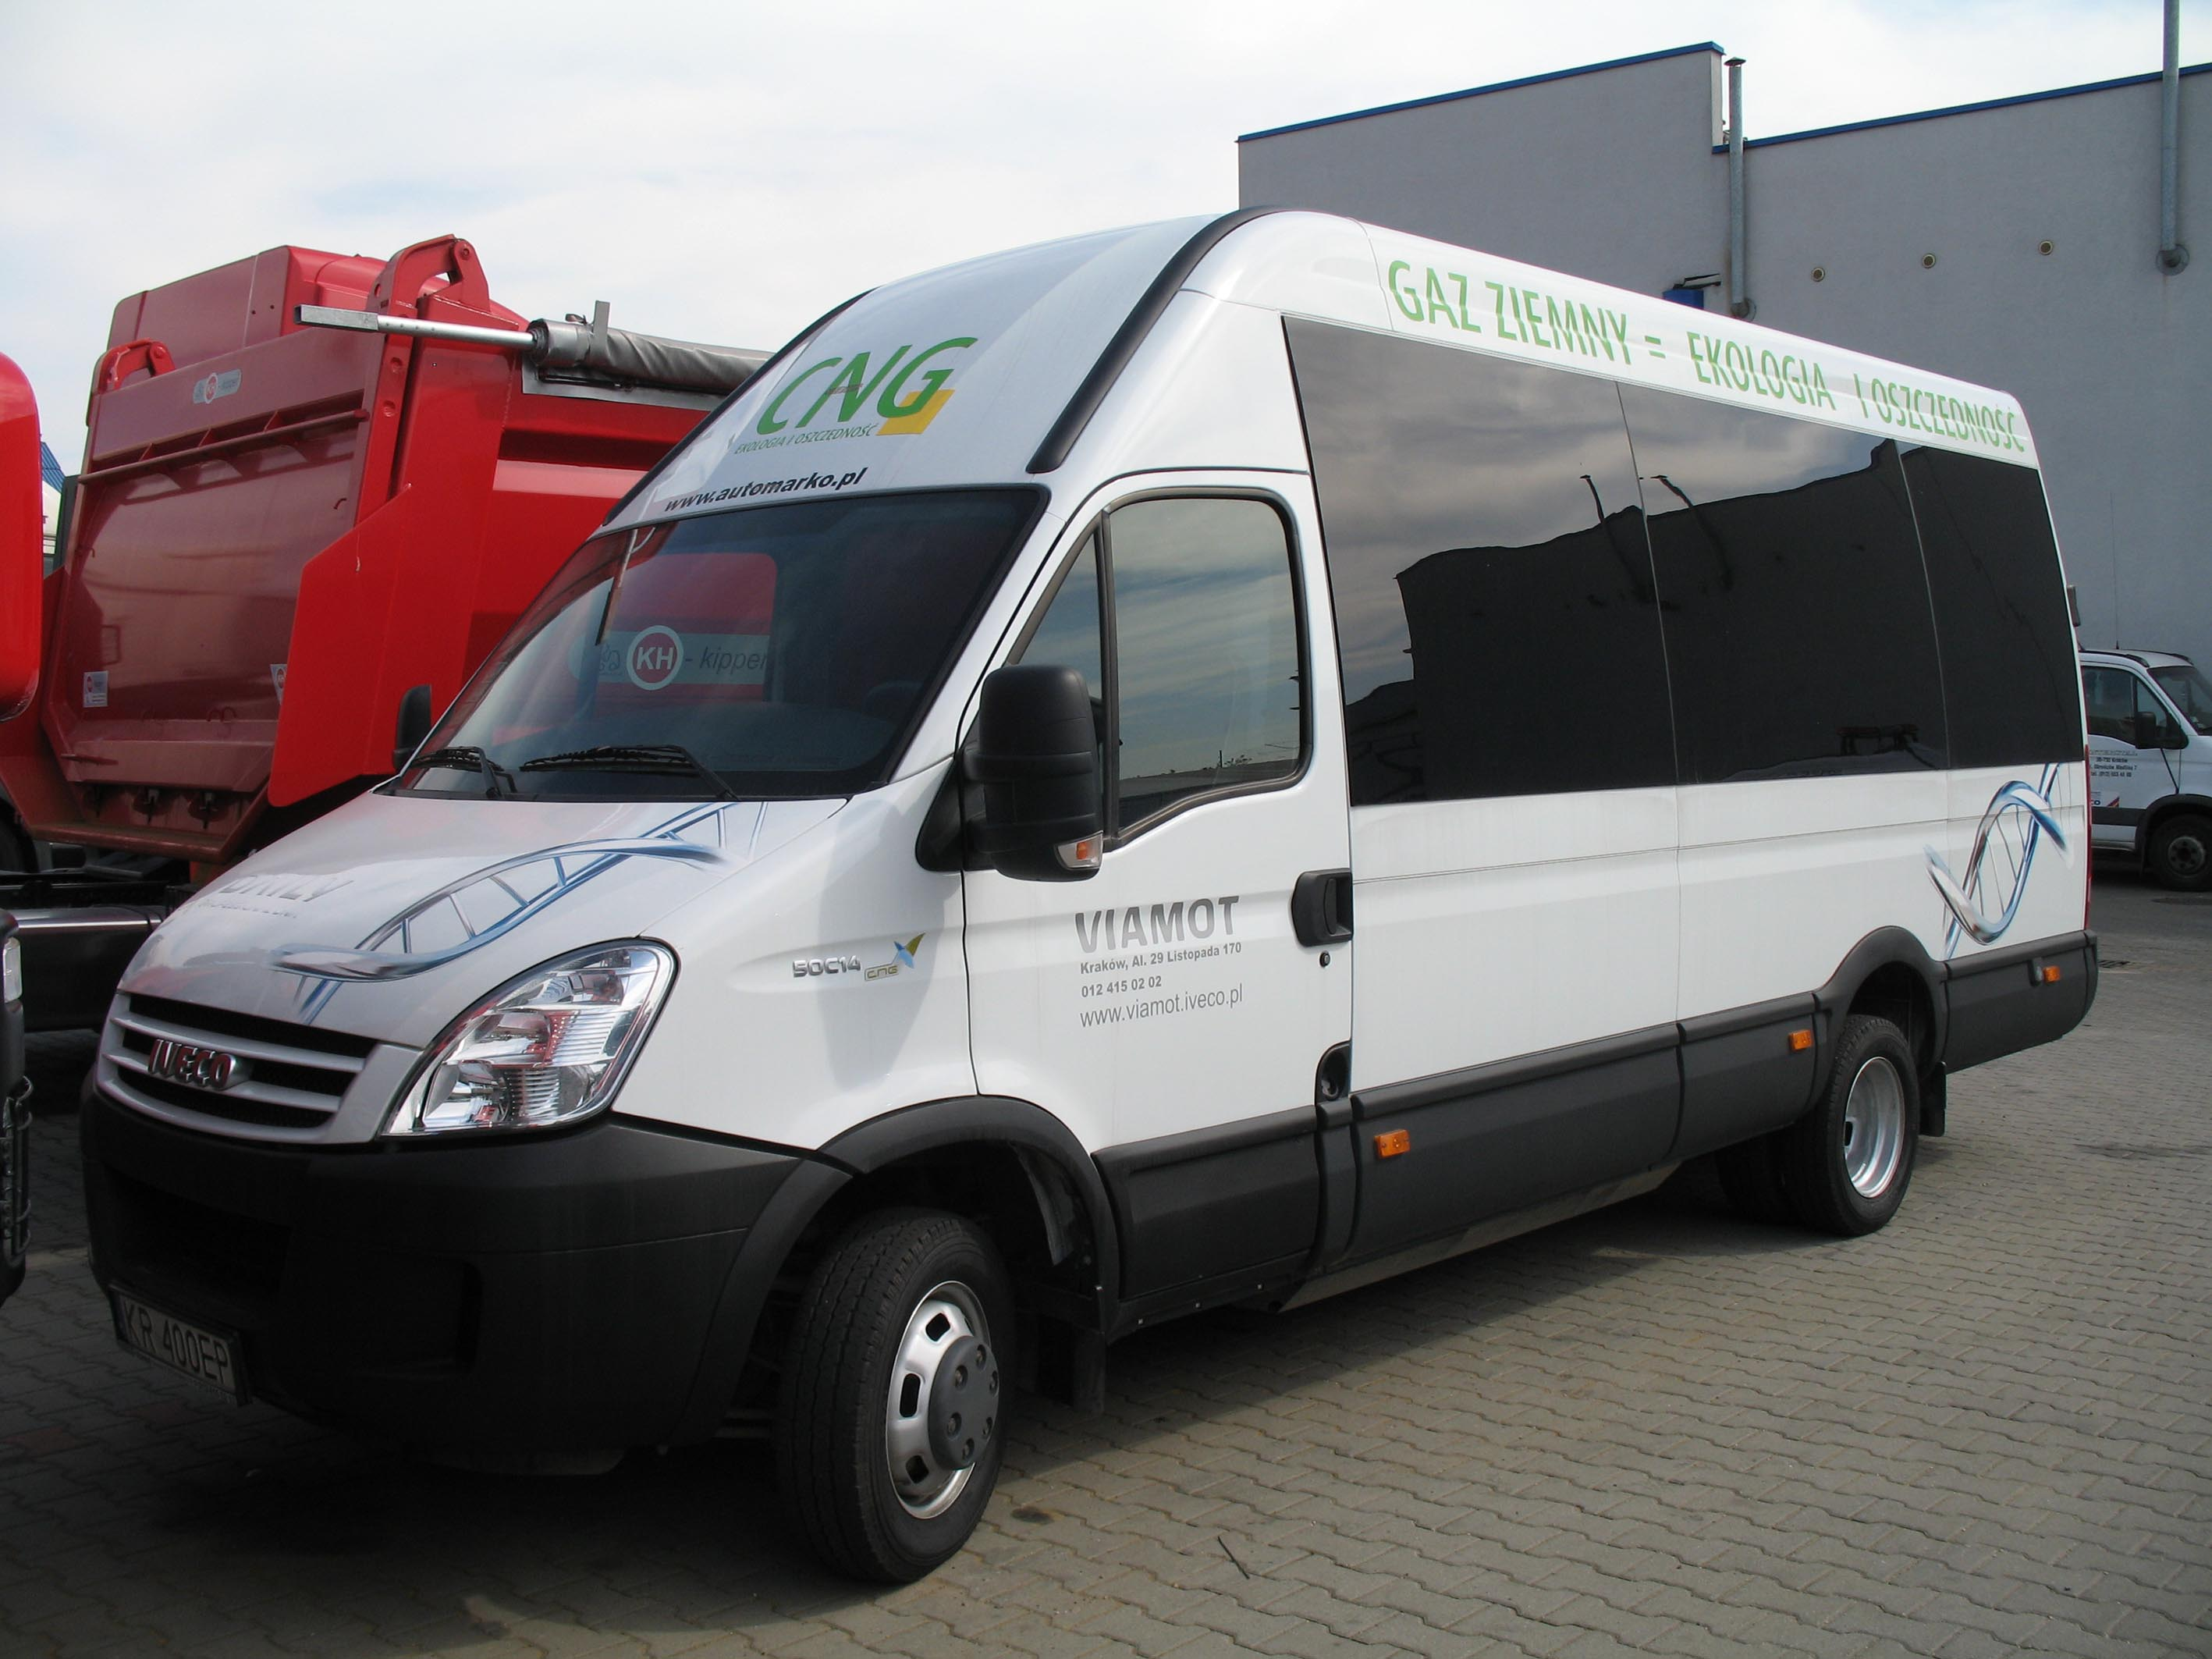 Ogromnie File:Bus Iveco Daily 50C14 CNG.jpg - Wikimedia Commons EL09